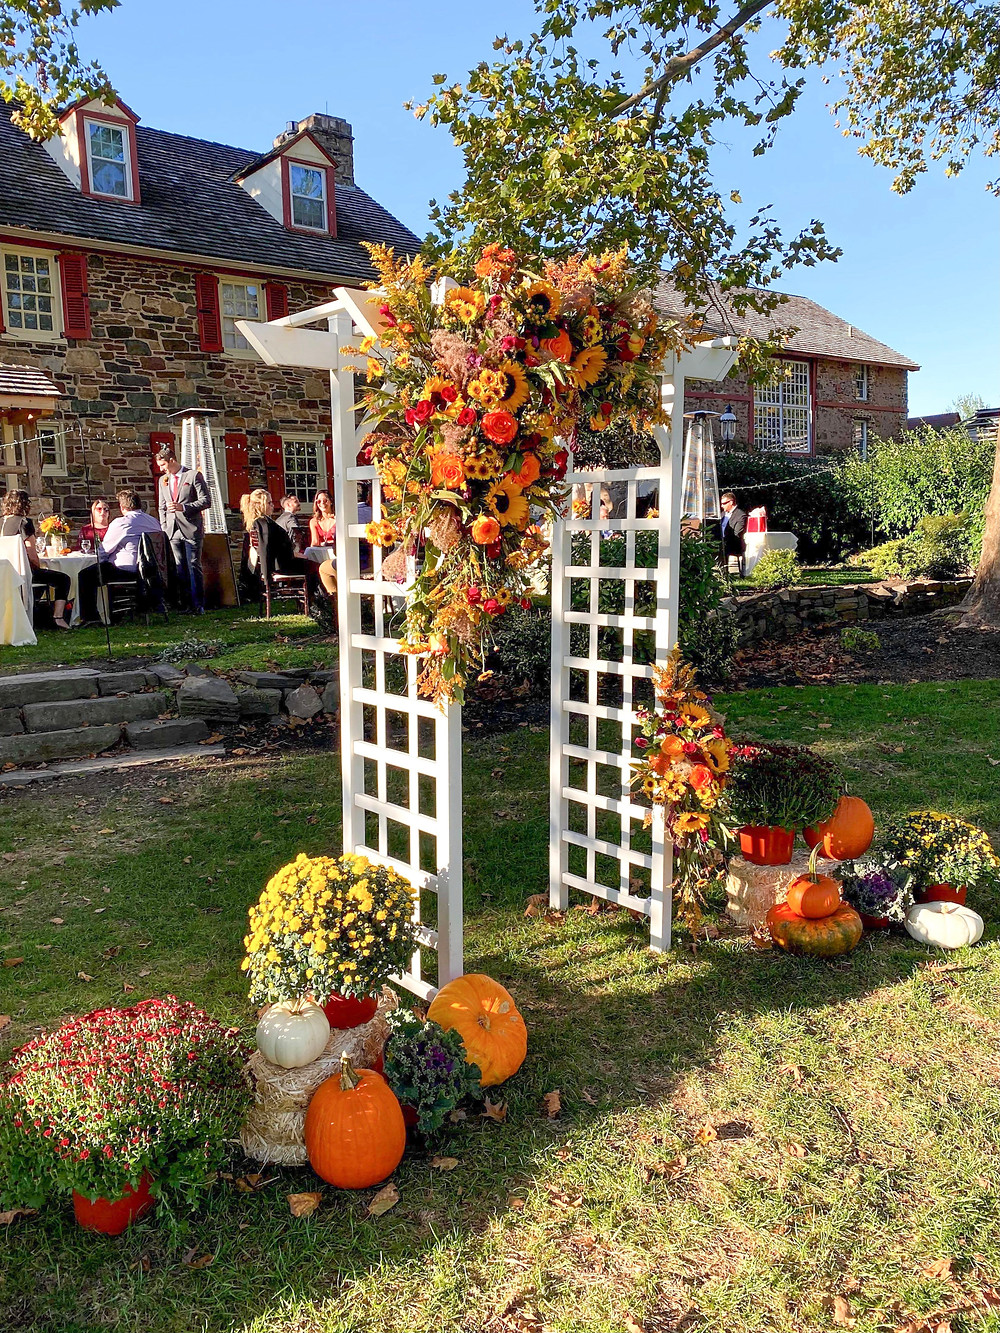 A fall wedding ceremony arbor with hanging sunflower arrangement surrounded by fall flowers and pumpkins at the base.